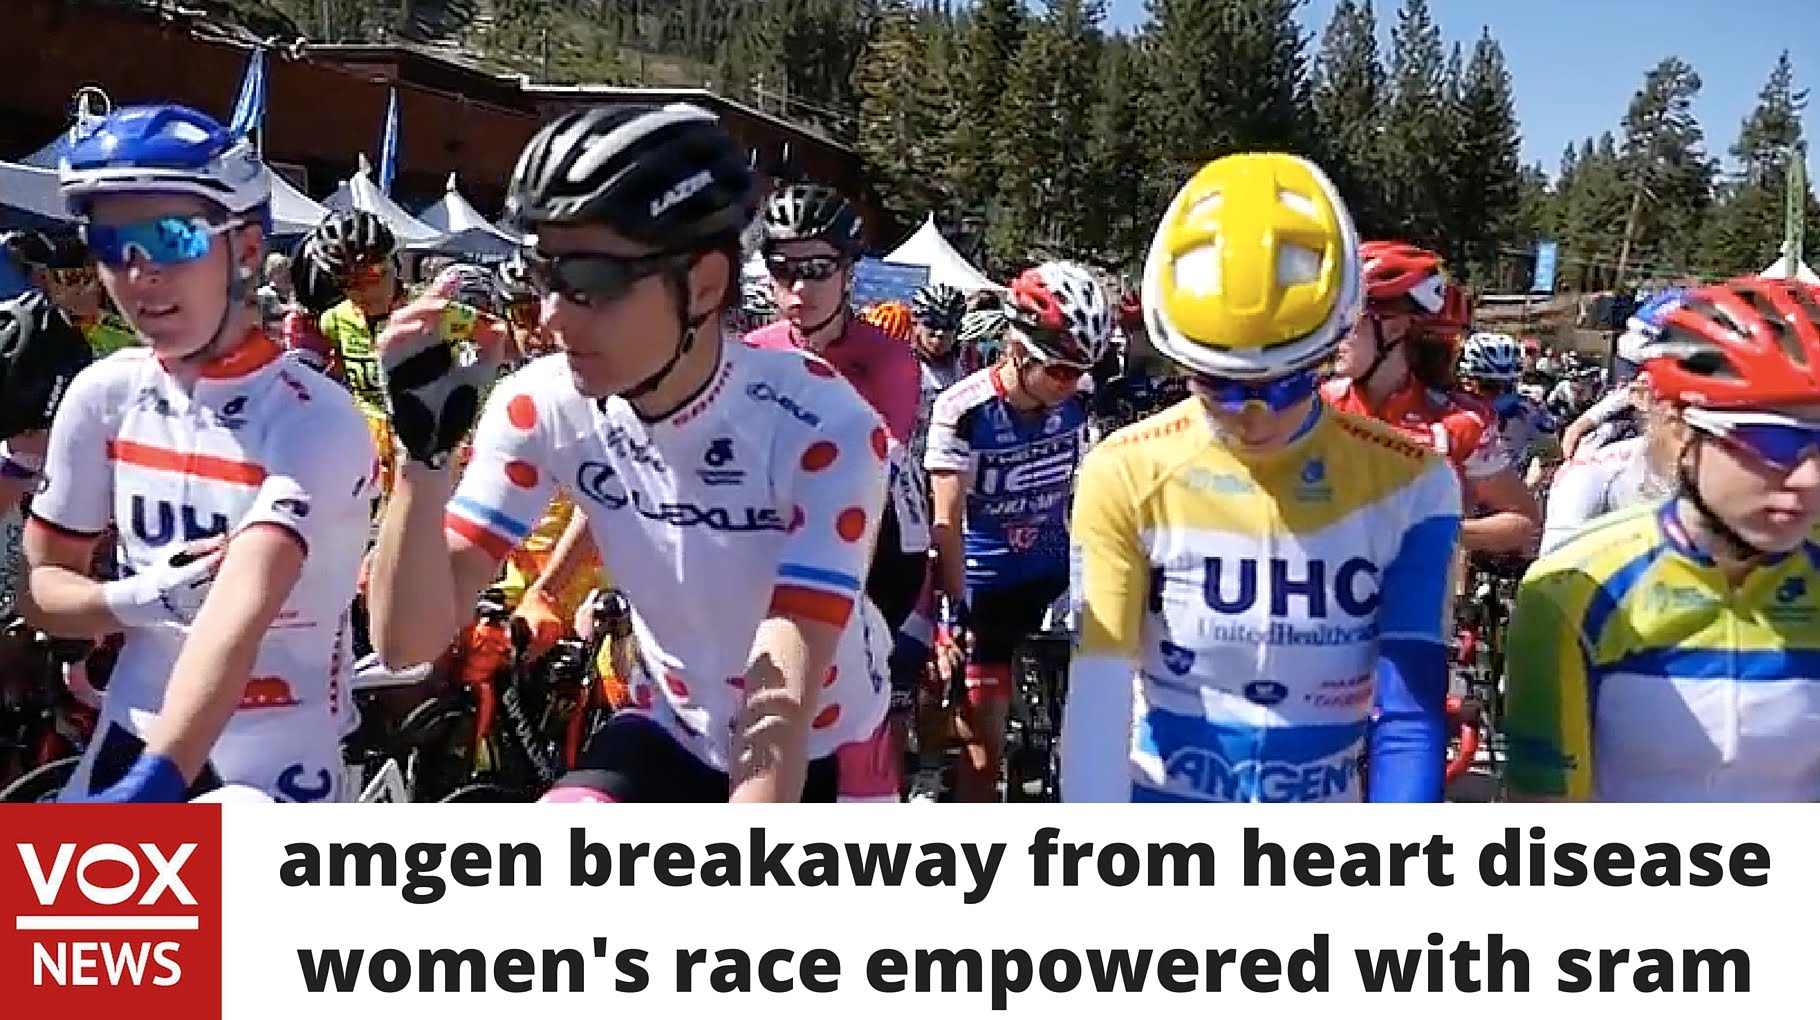 Women's Cycling at its Best!